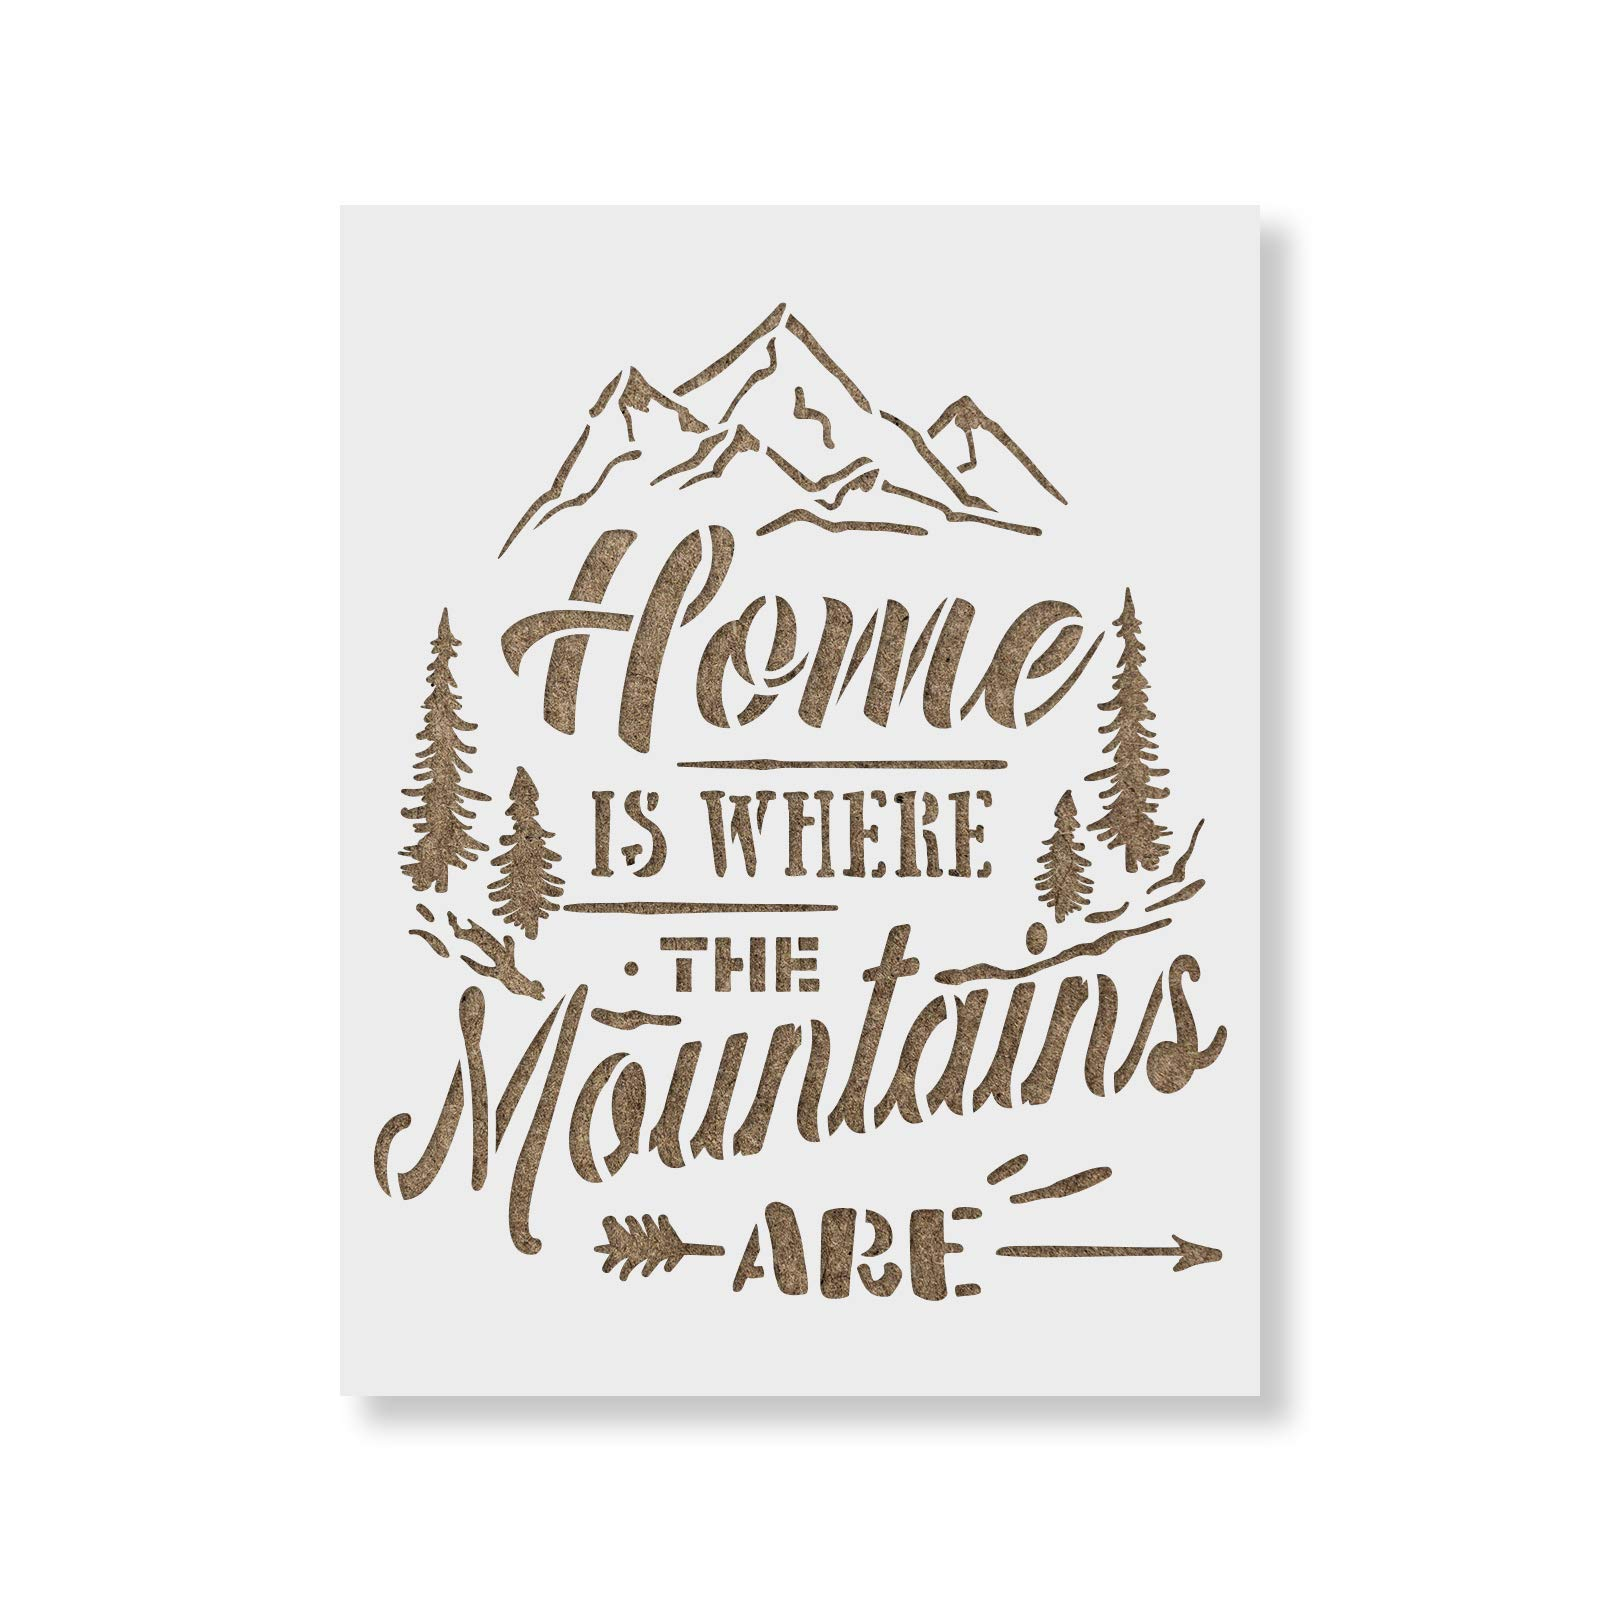 Home is Where The Mountains are Stencil Template for Walls and Crafts - Reusable Stencils for Painting in Small & Large Sizes